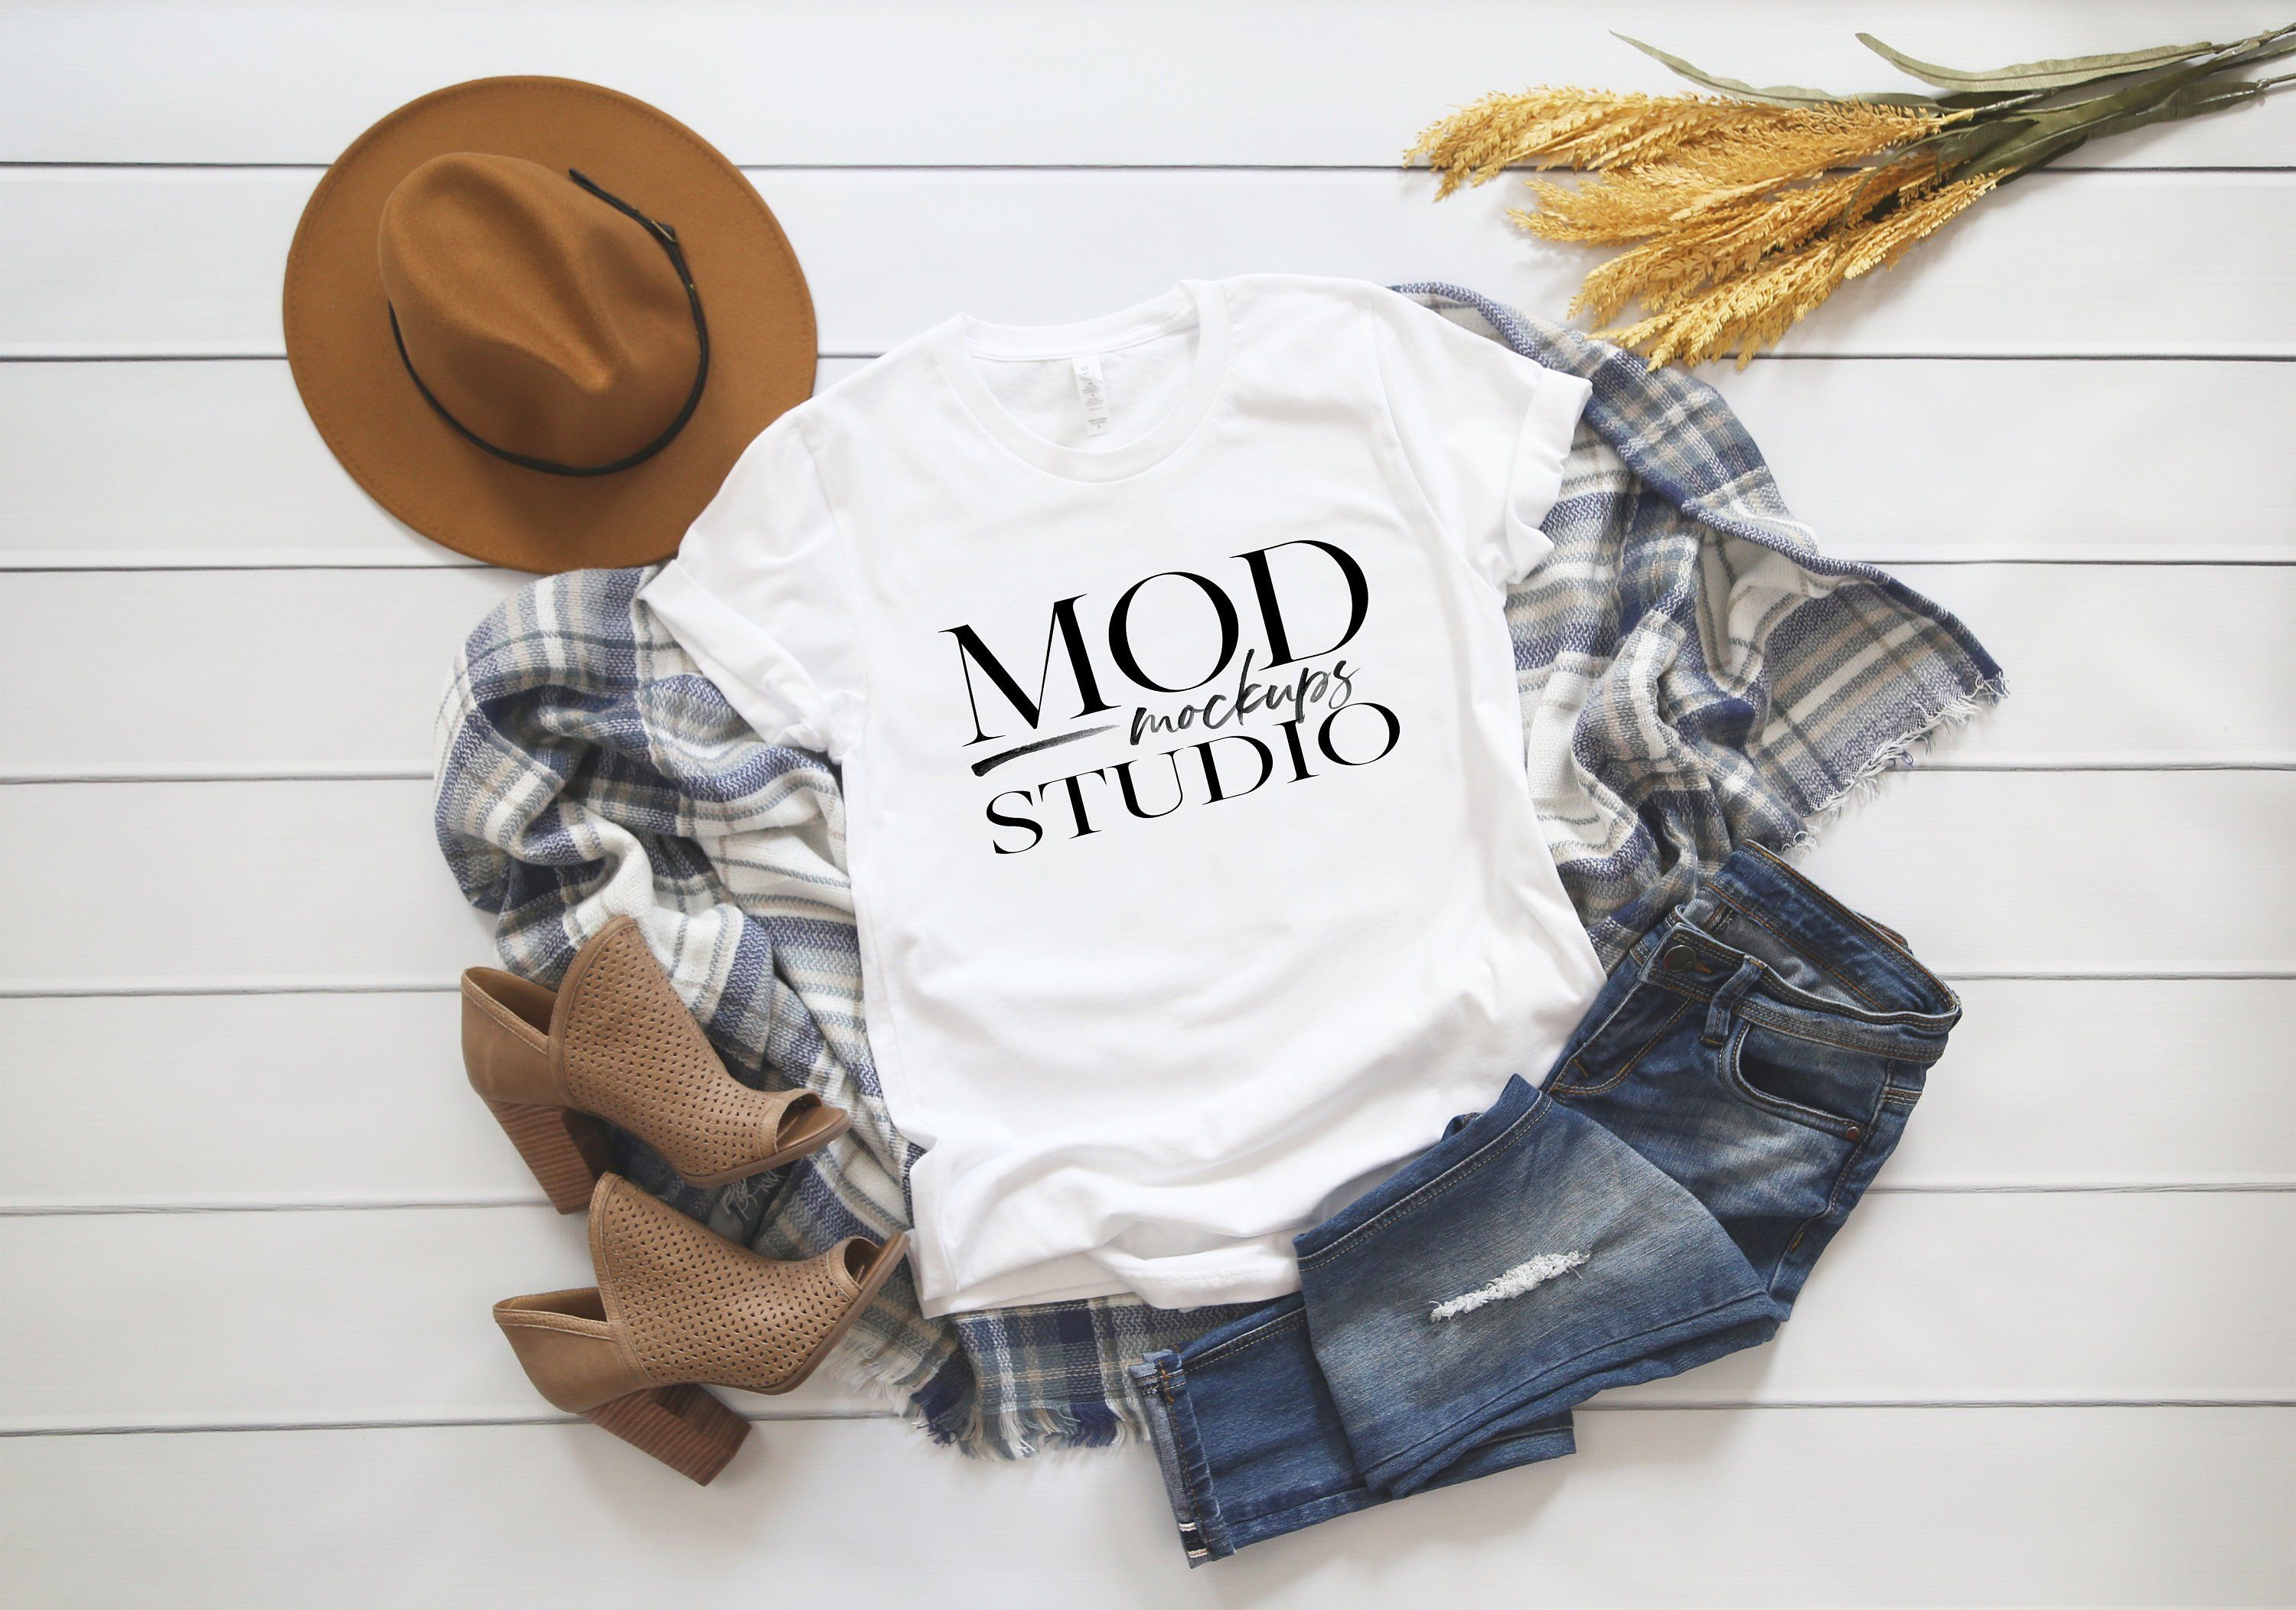 Download Bella Canvas 3001 White T Shirt Mockup Fall Mockup Etsy Shirt Mockup Clothing Mockup Tshirt Mockup